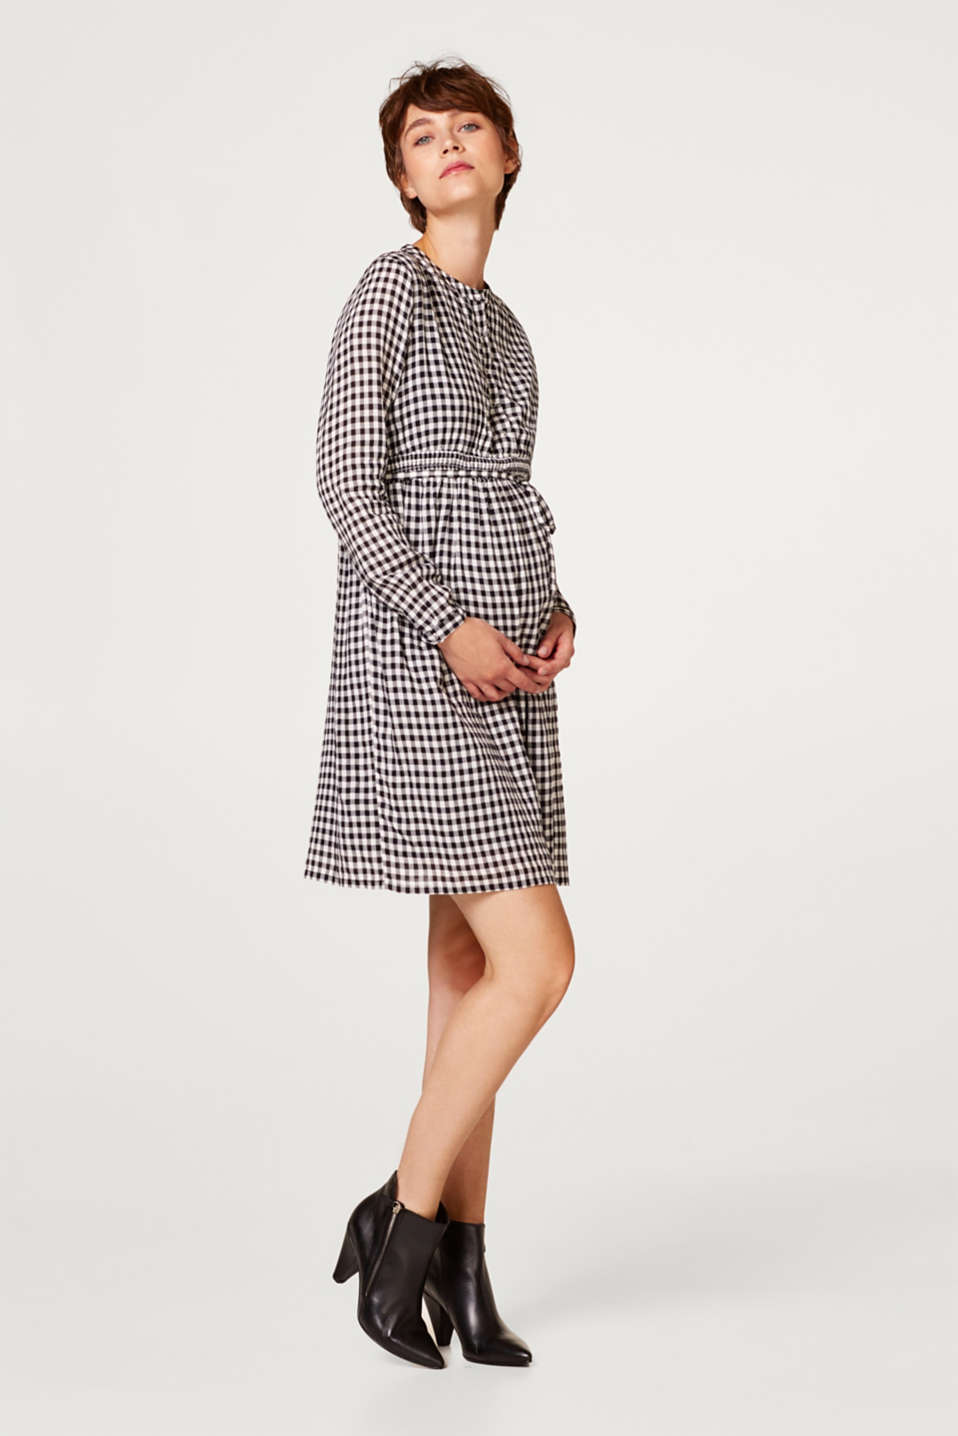 Trendily checked woven dress, LCBLACK, detail image number 1